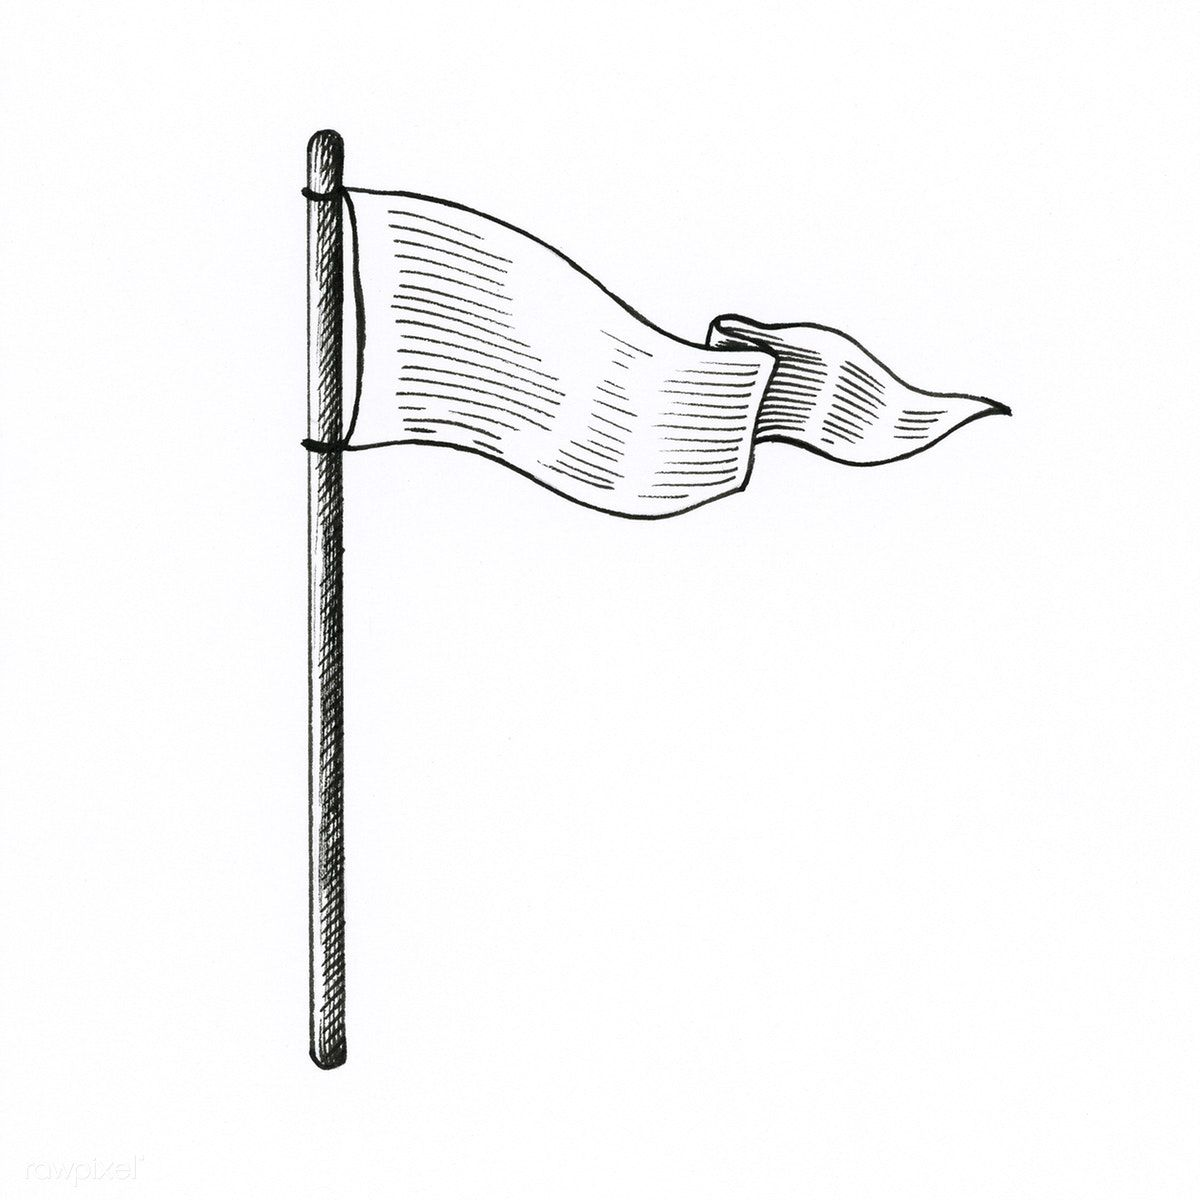 Hand Drawn White Flag Isolated On Background Free Image By Rawpixel Com How To Draw Hands Flag Drawing White Flag